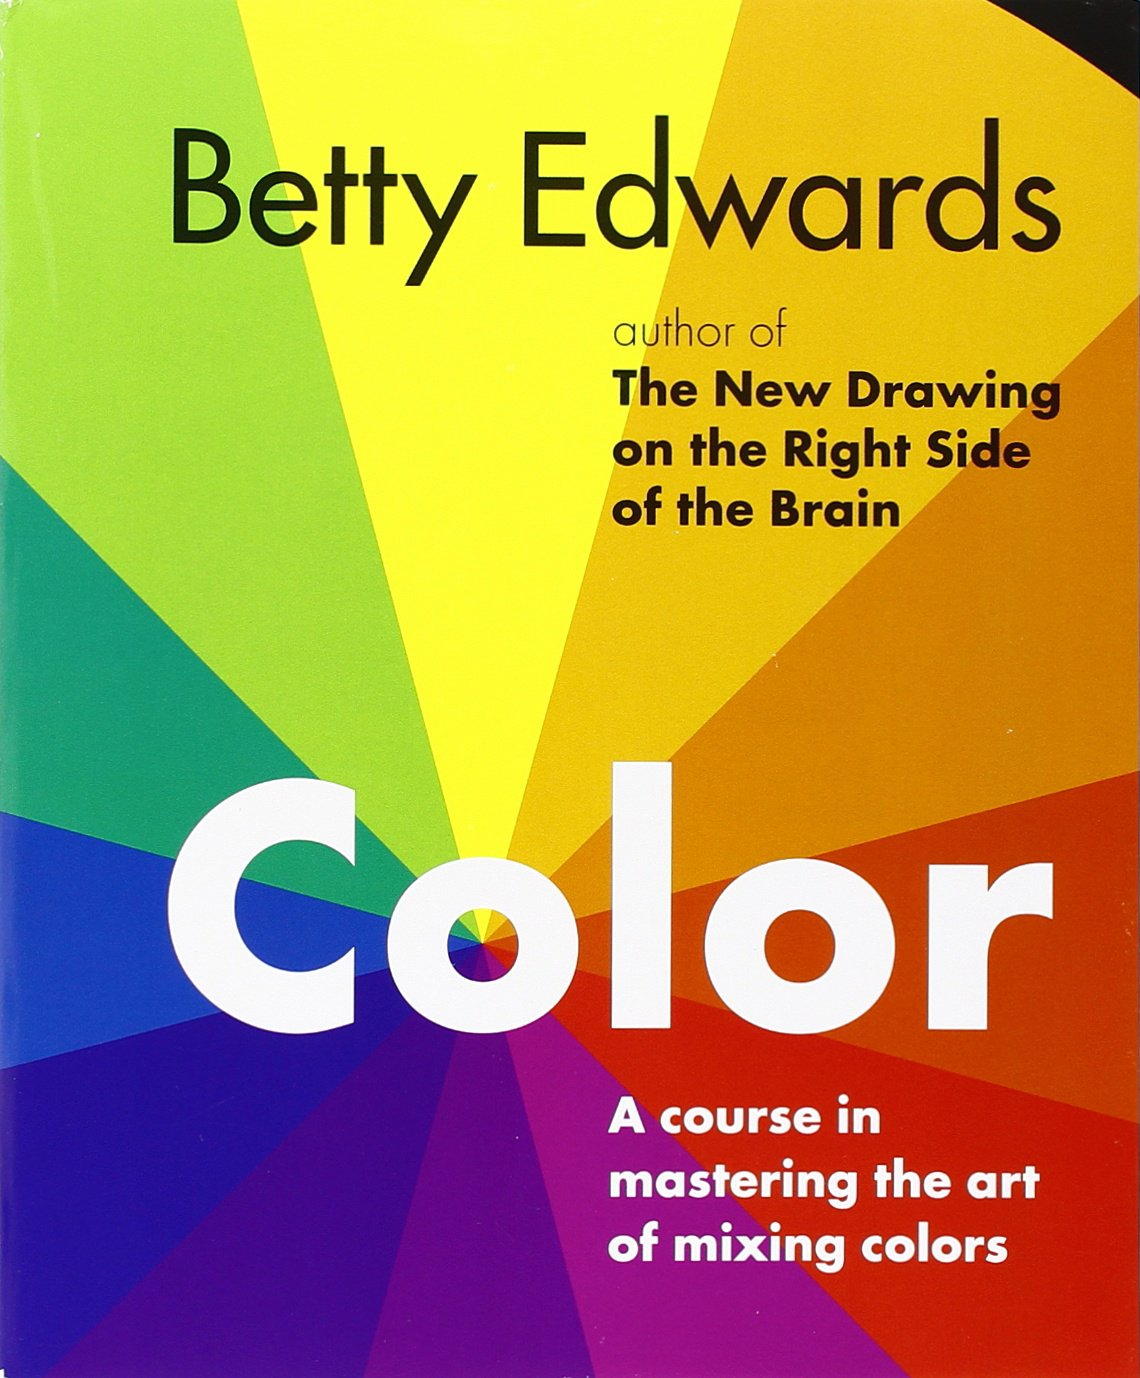 Book for color theory - Color by betty edwards a course in mastering the art of mixing colors betty edwards 9781585422197 amazon com books